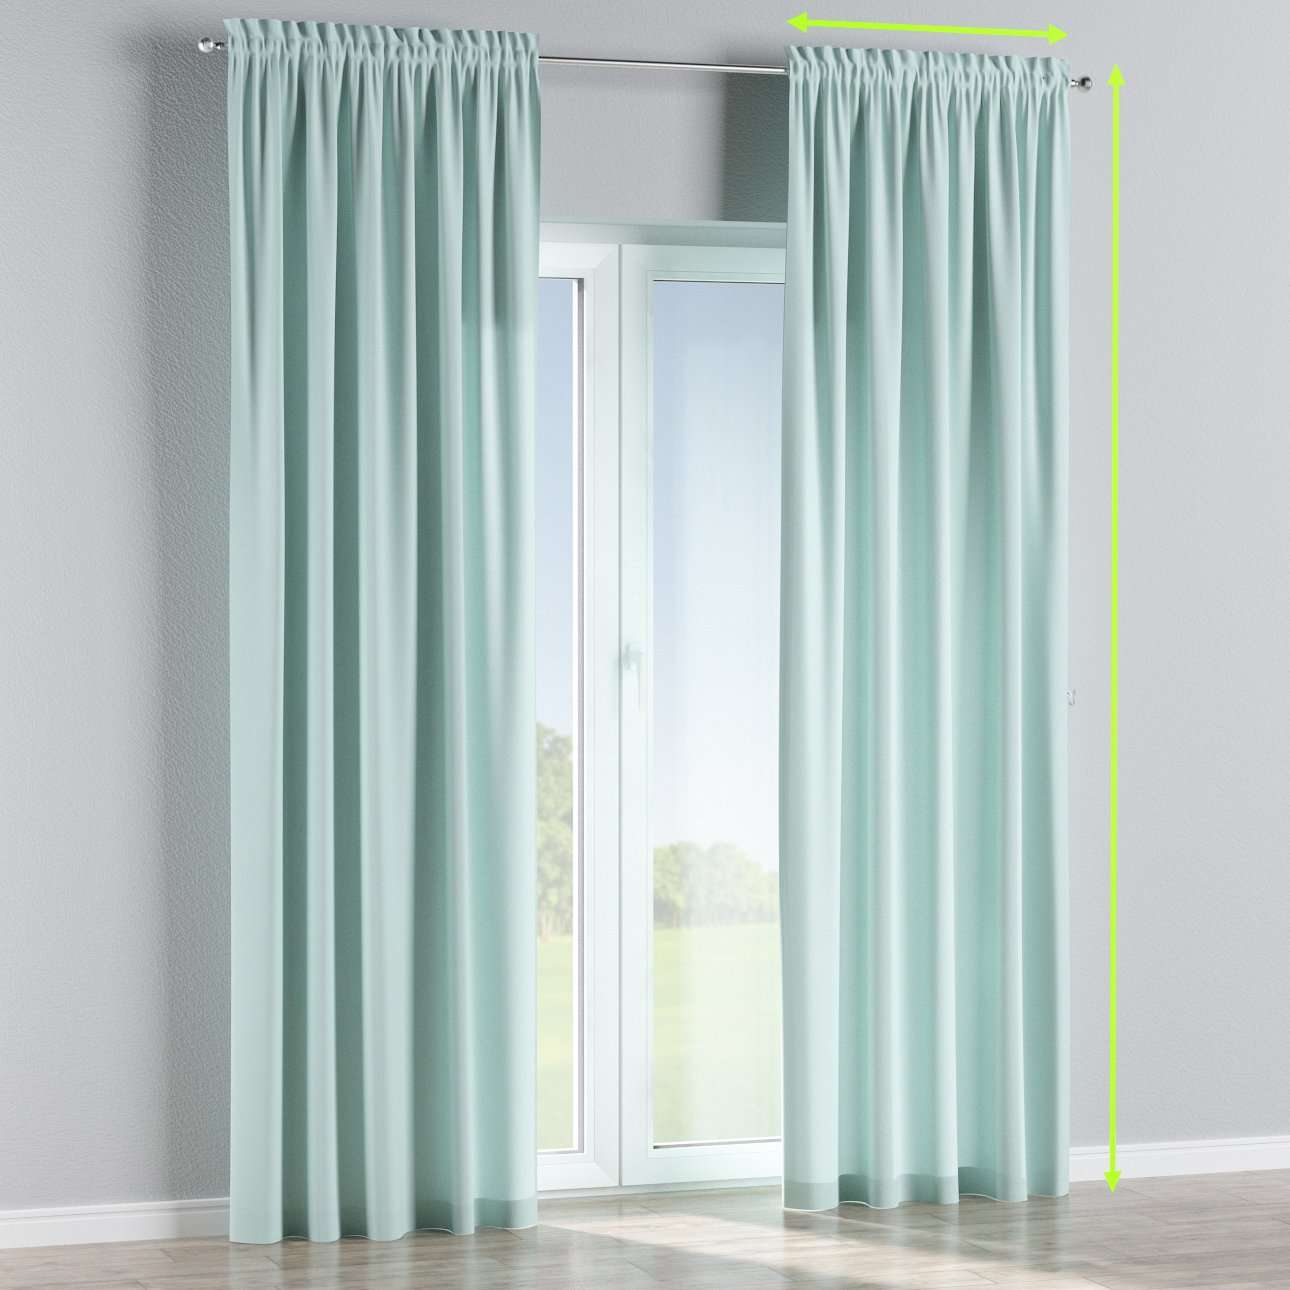 Slot and frill lined curtains in collection Cotton Panama, fabric: 702-10